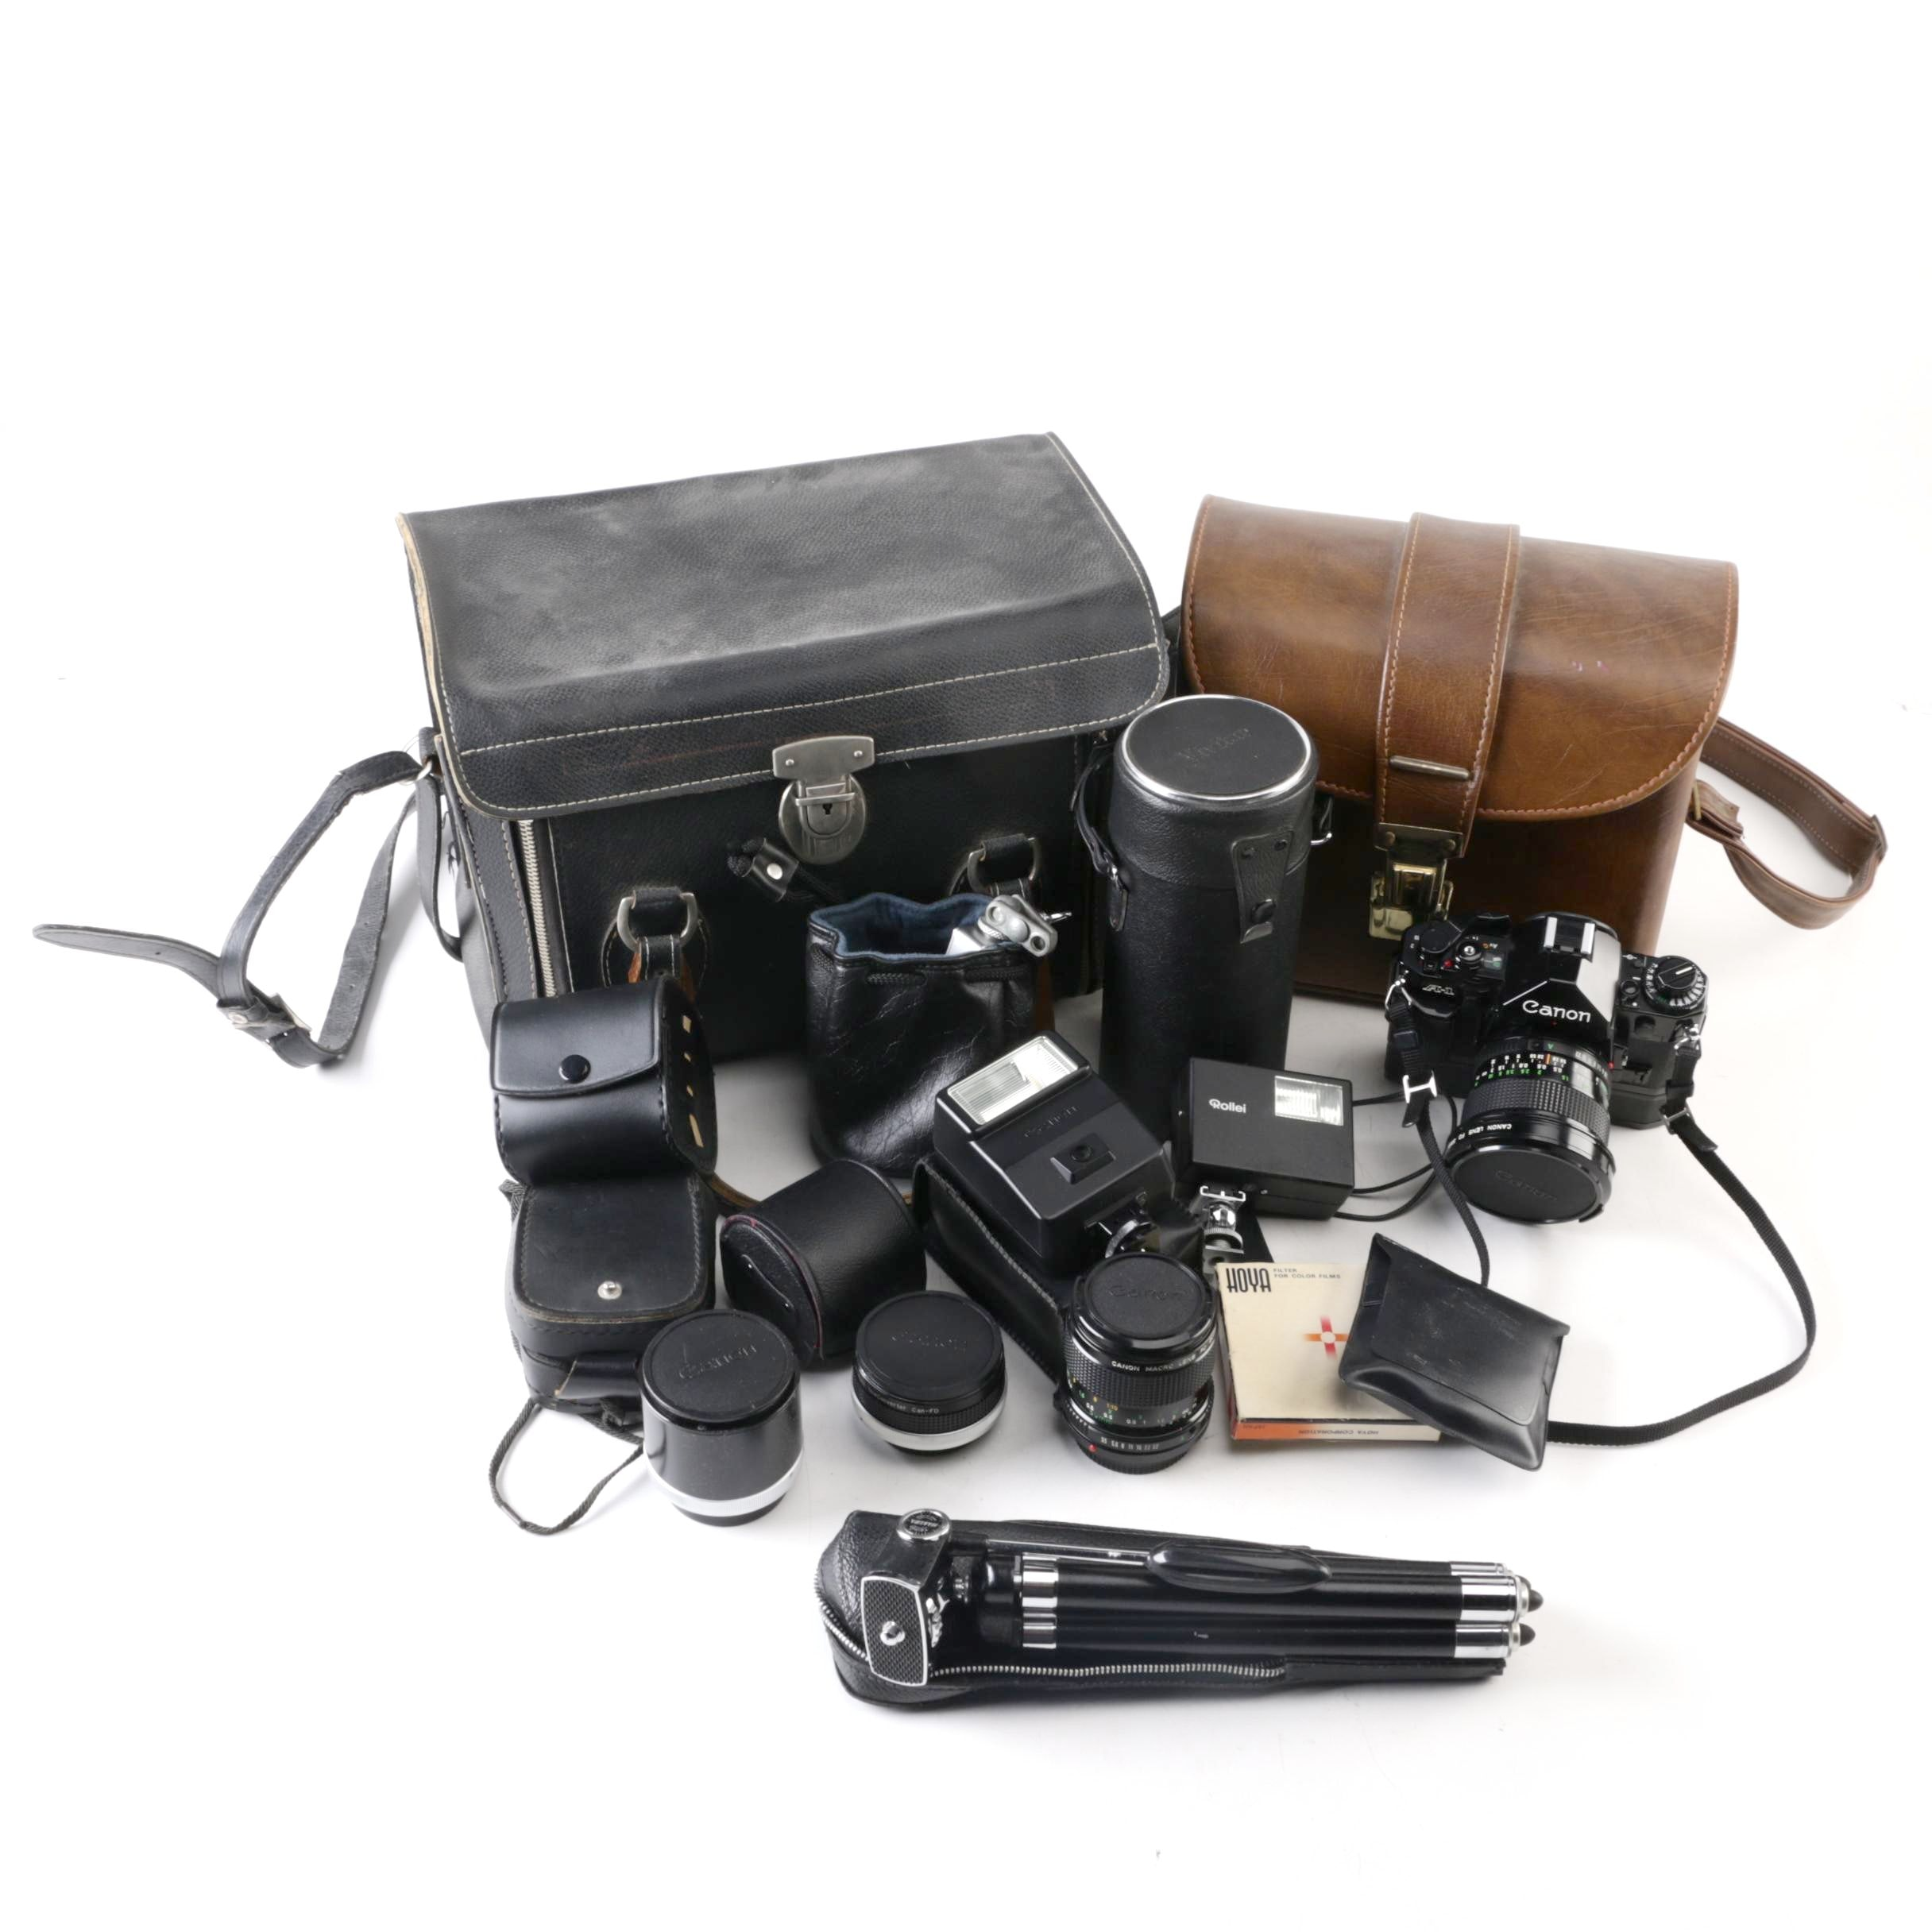 Canon A-1 Camera, Lens And Accessories